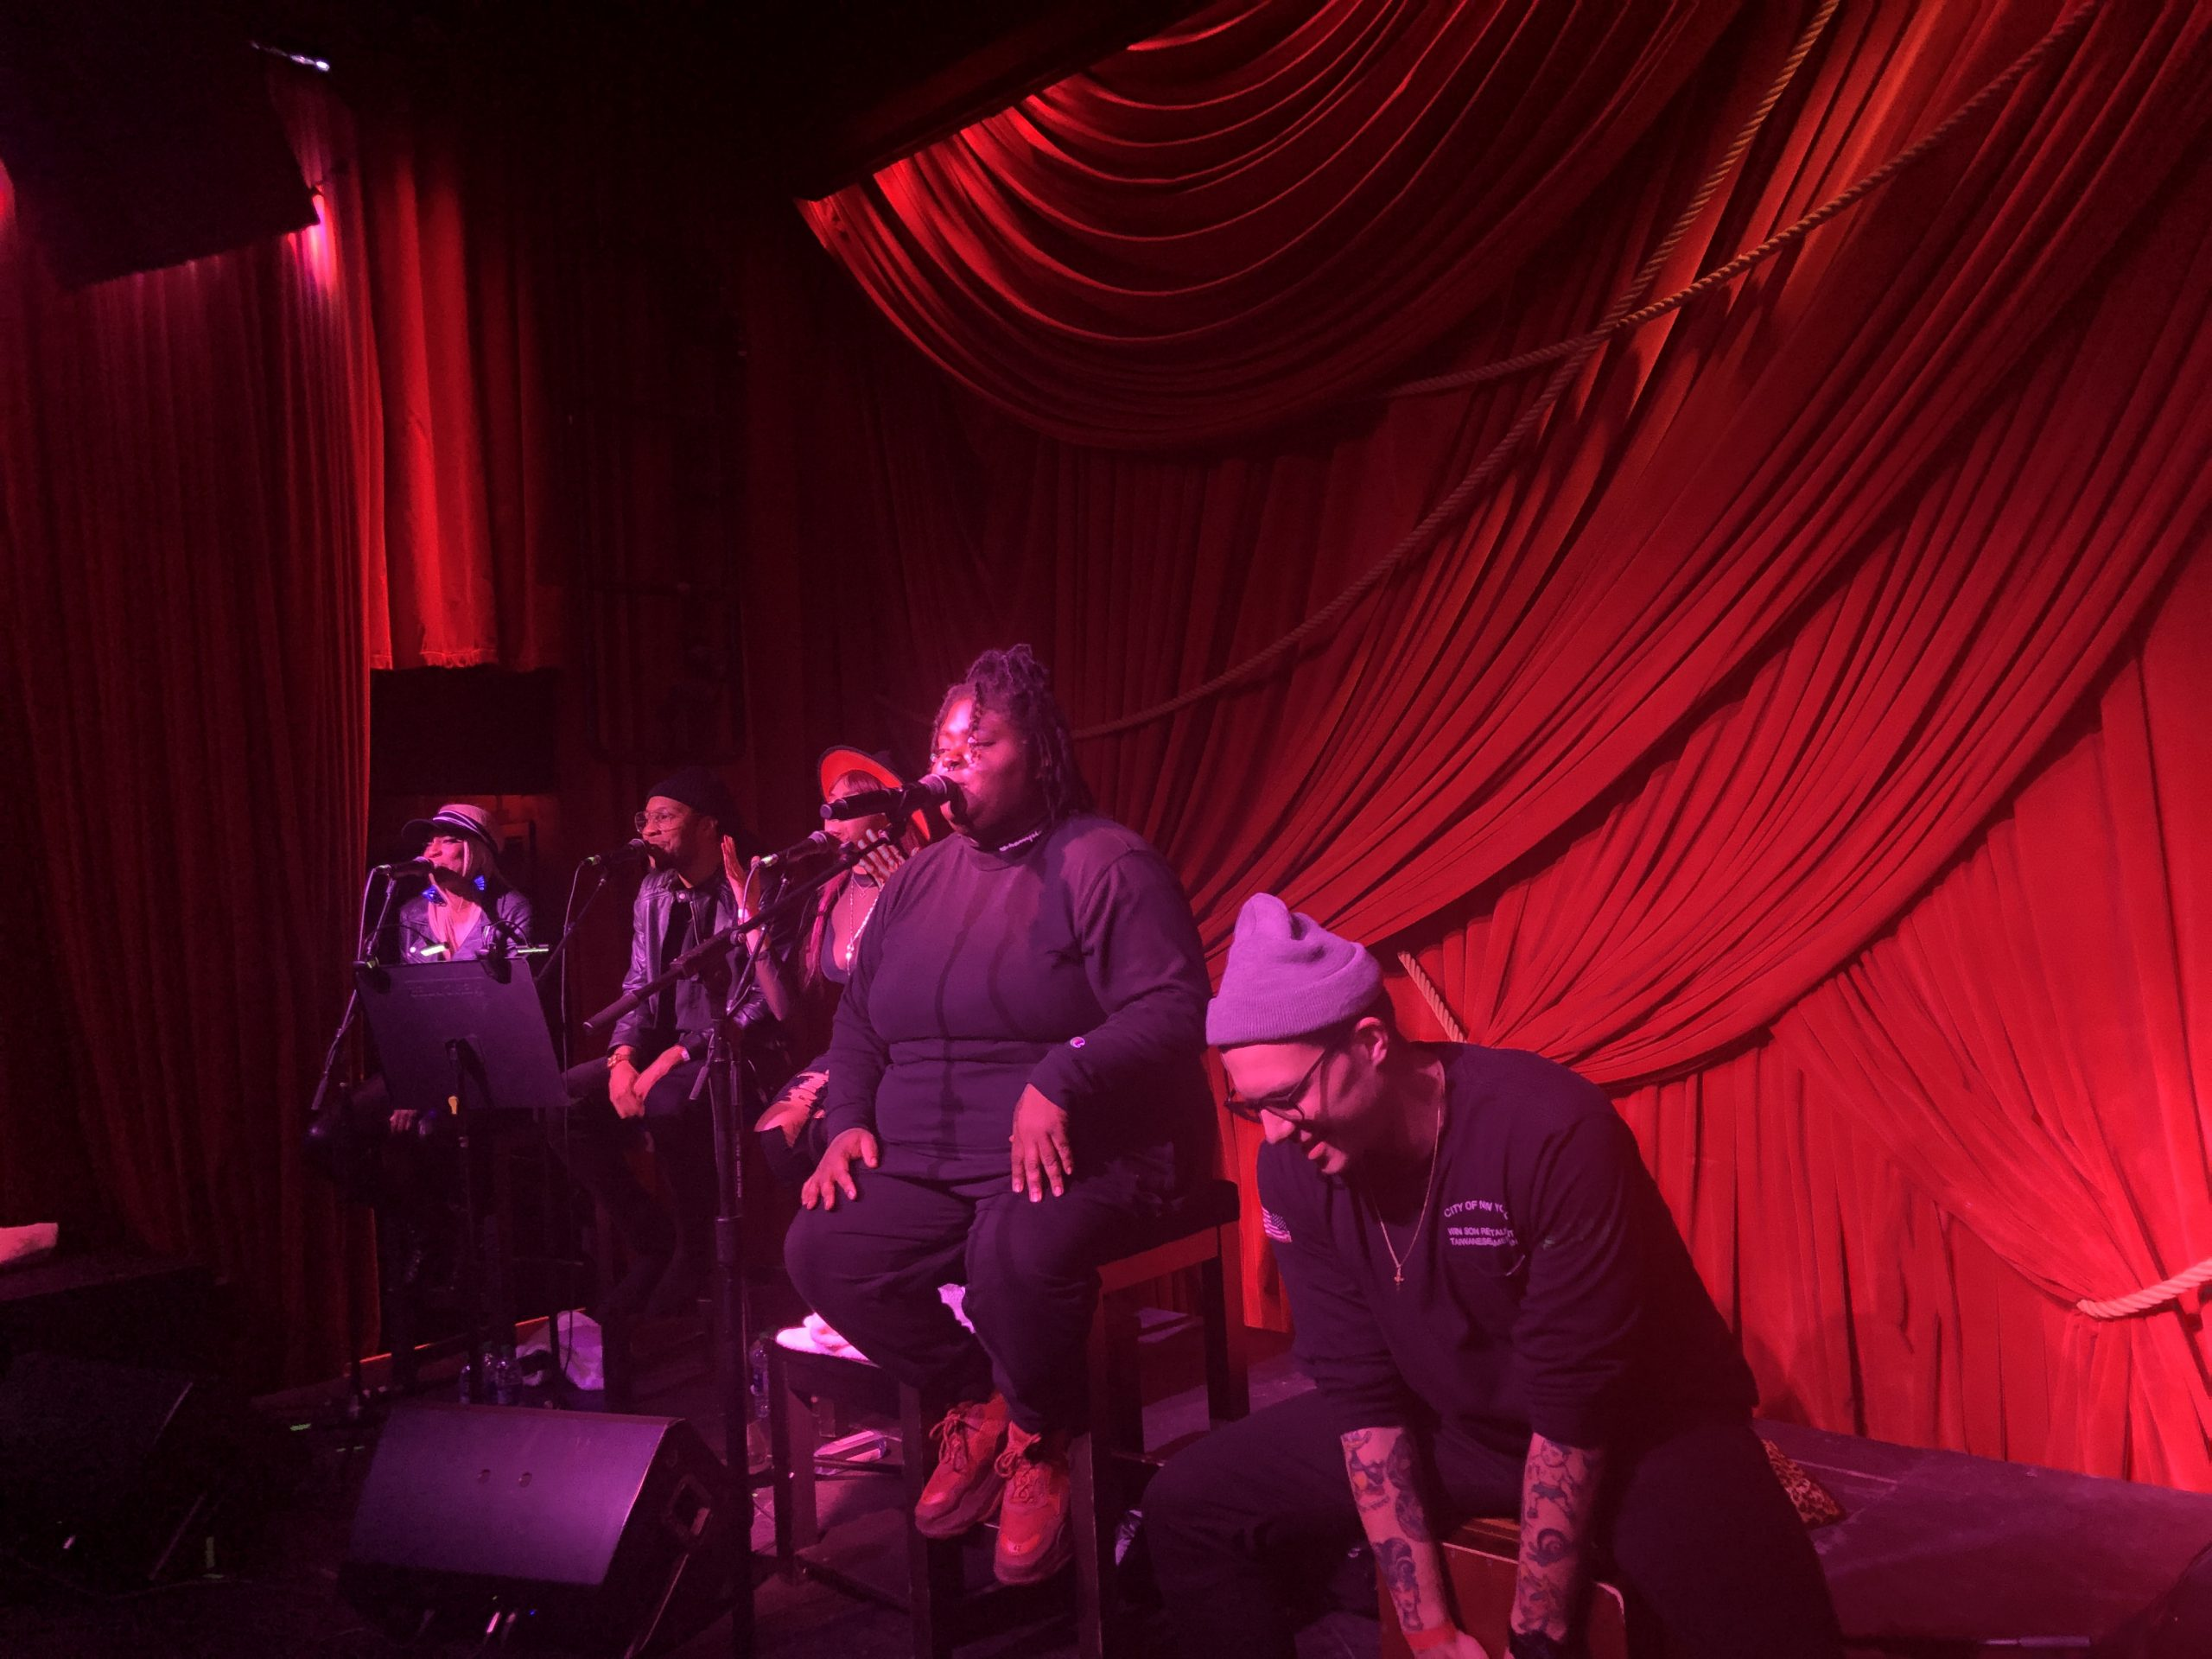 Alabama Rapper Chika Performs for Sold Out NYC Crowd